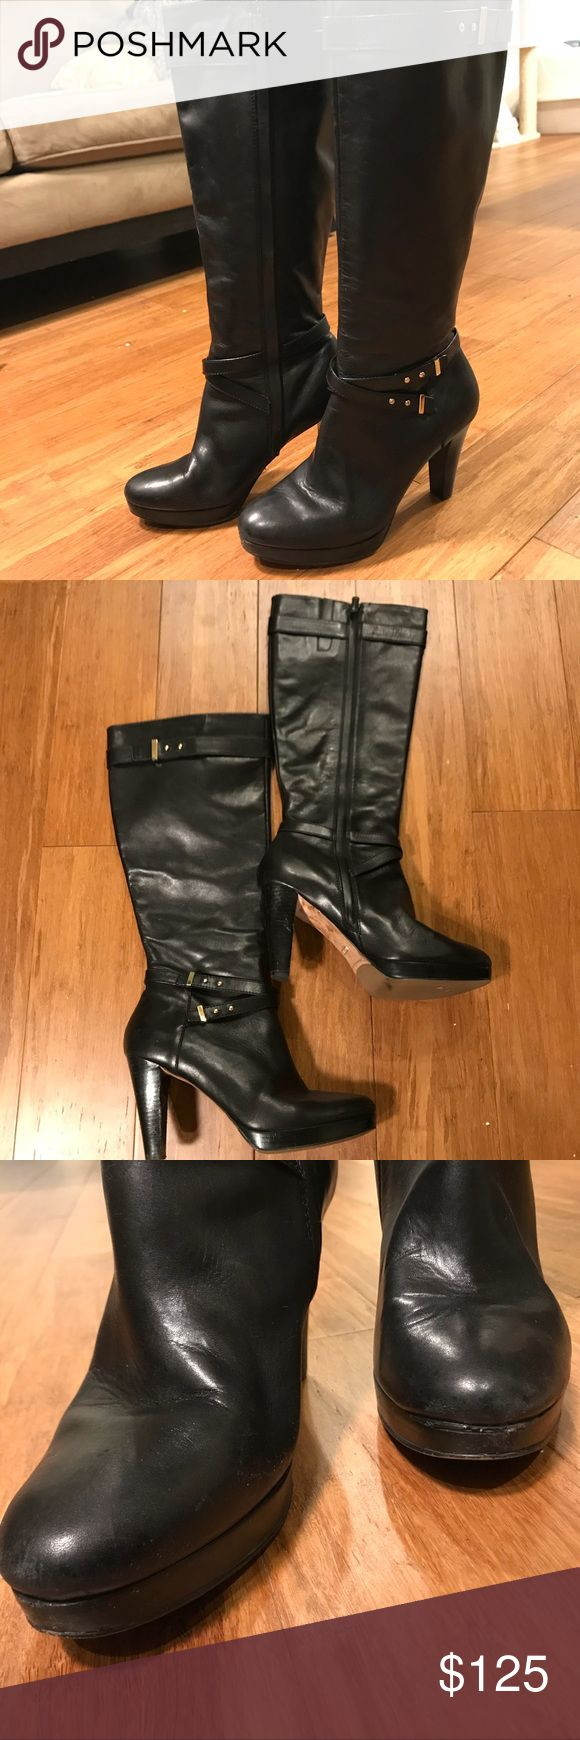 Spotted while shopping on Poshmark: Cole Haan heeled leather boots! #poshmark #fashion #shopping #style #Cole Haan #Shoes